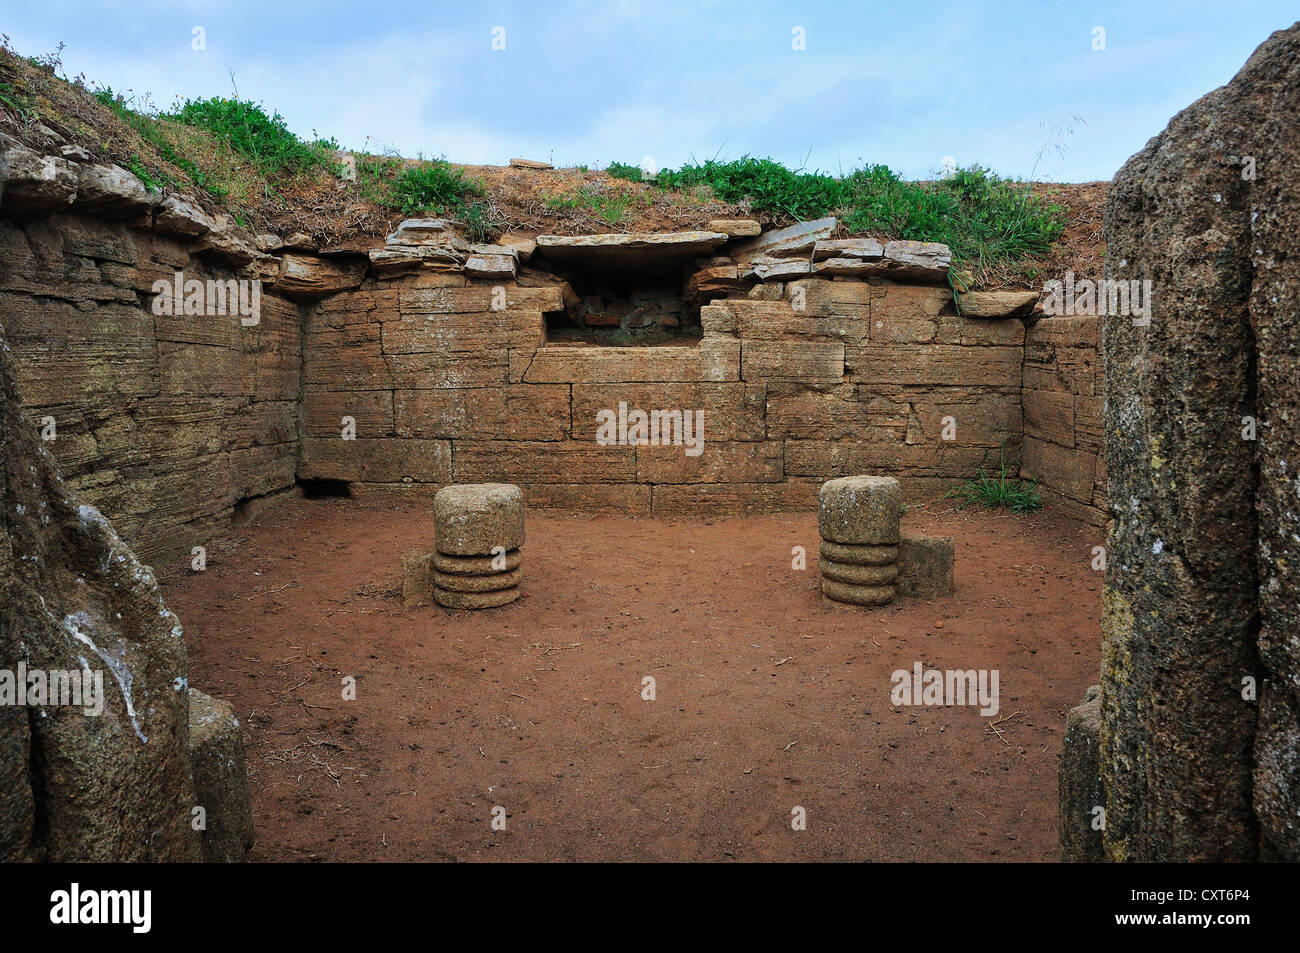 Remains of a burial mound, Etruscan Necropoleis of Populonia, Gulf of Baratti, Tuscany, Italy, Europe - Stock Image